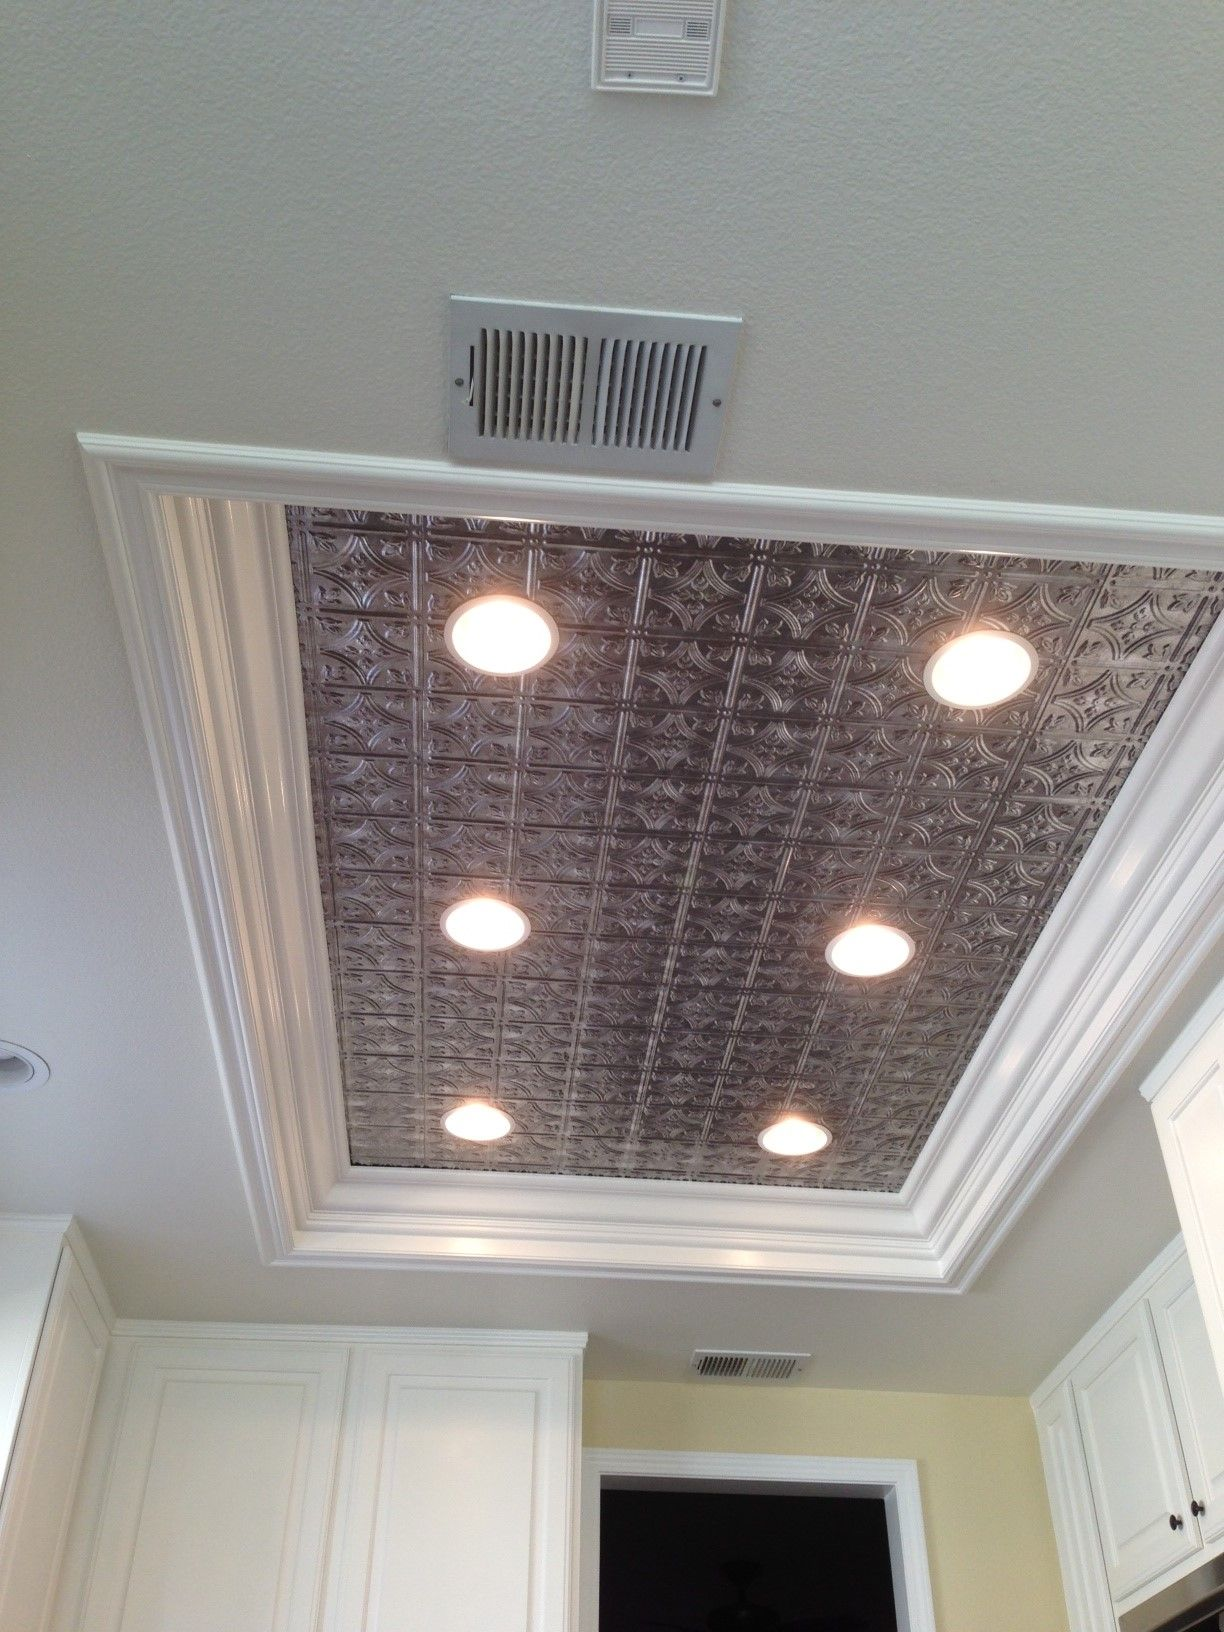 Fluorescent Kitchen Light Fixtures Remodel Flourescent Light Box In Kitchen We Also Replaced The